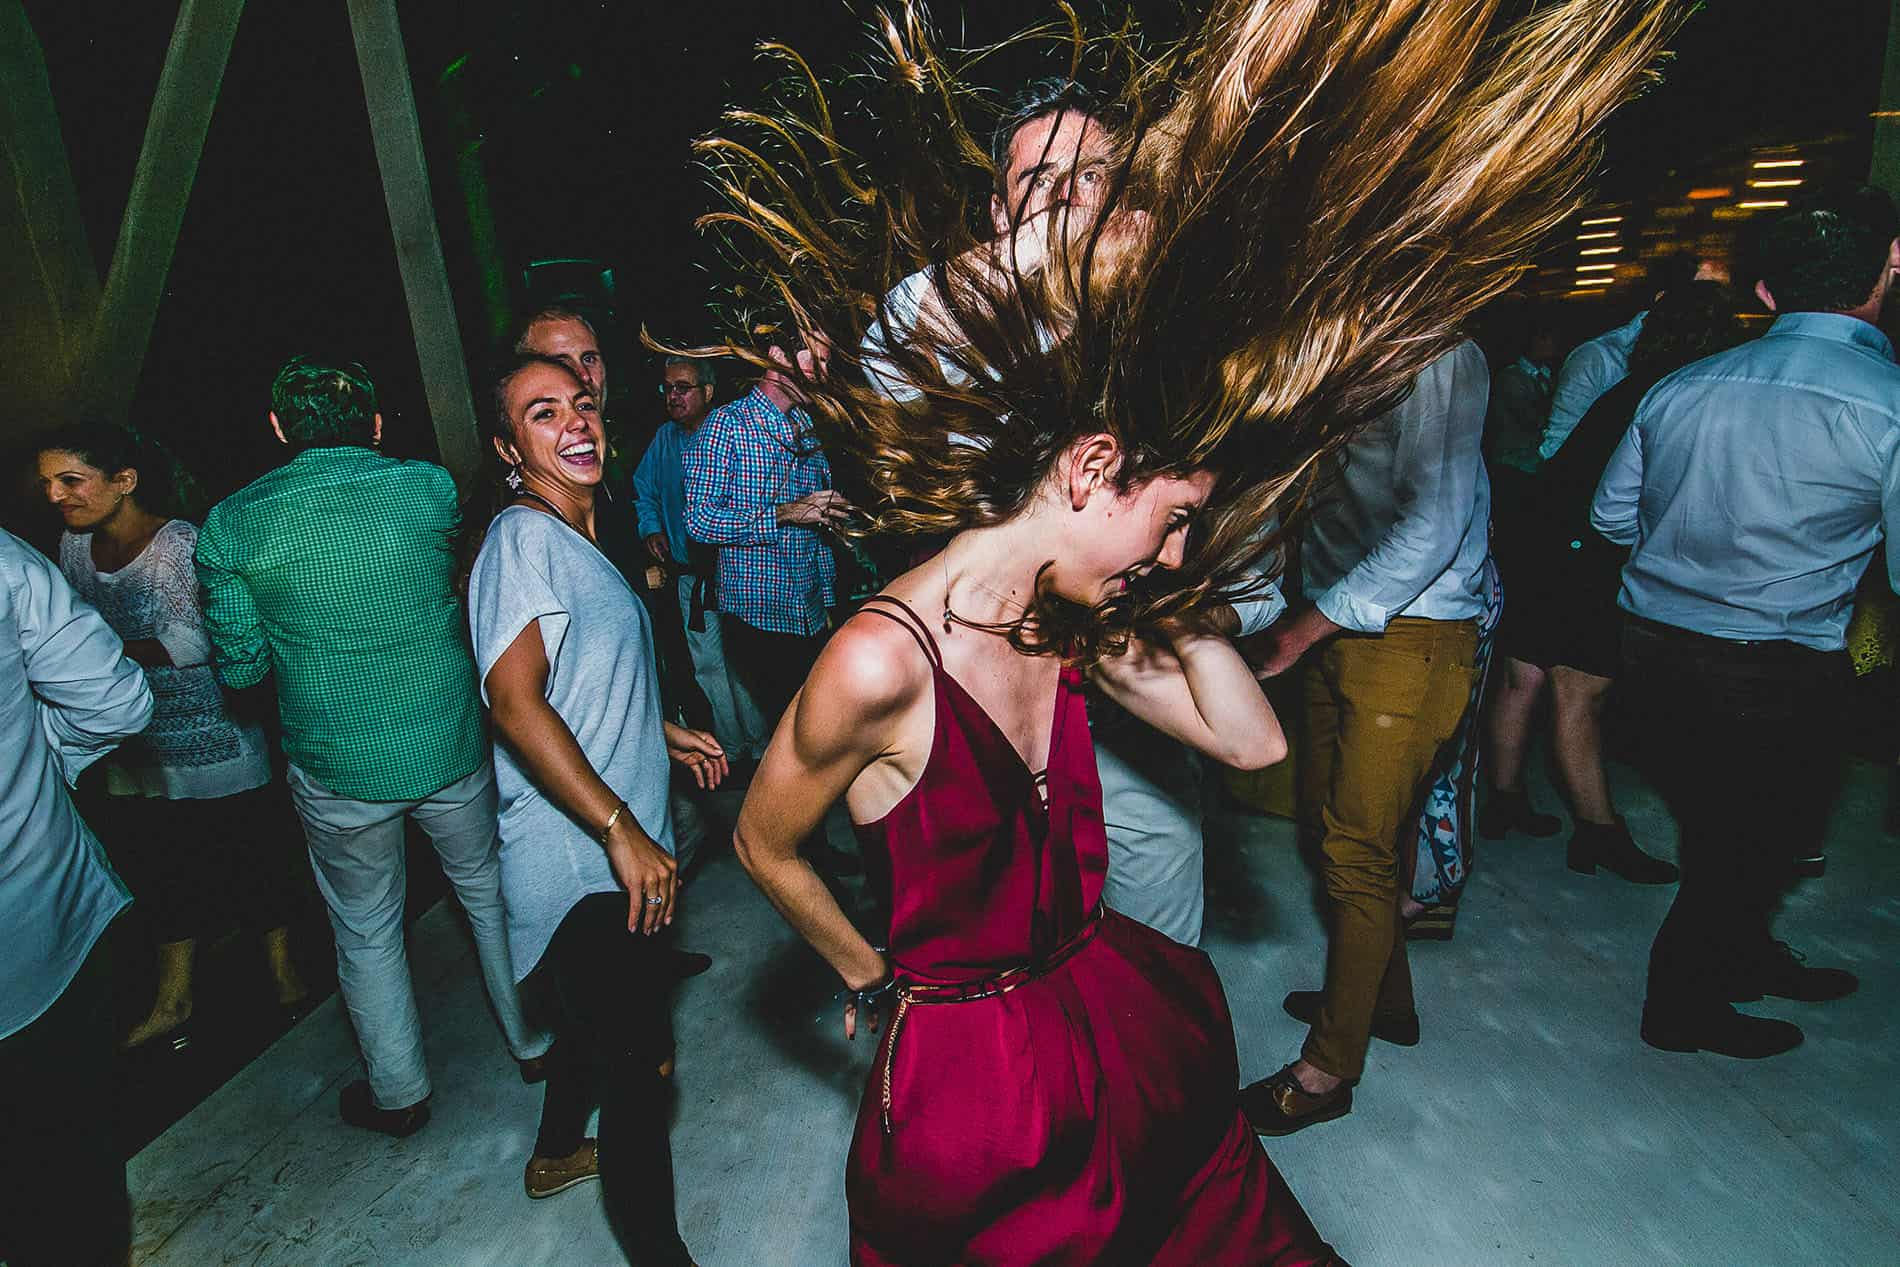 girl dancing with her hair in the wind in the wedding